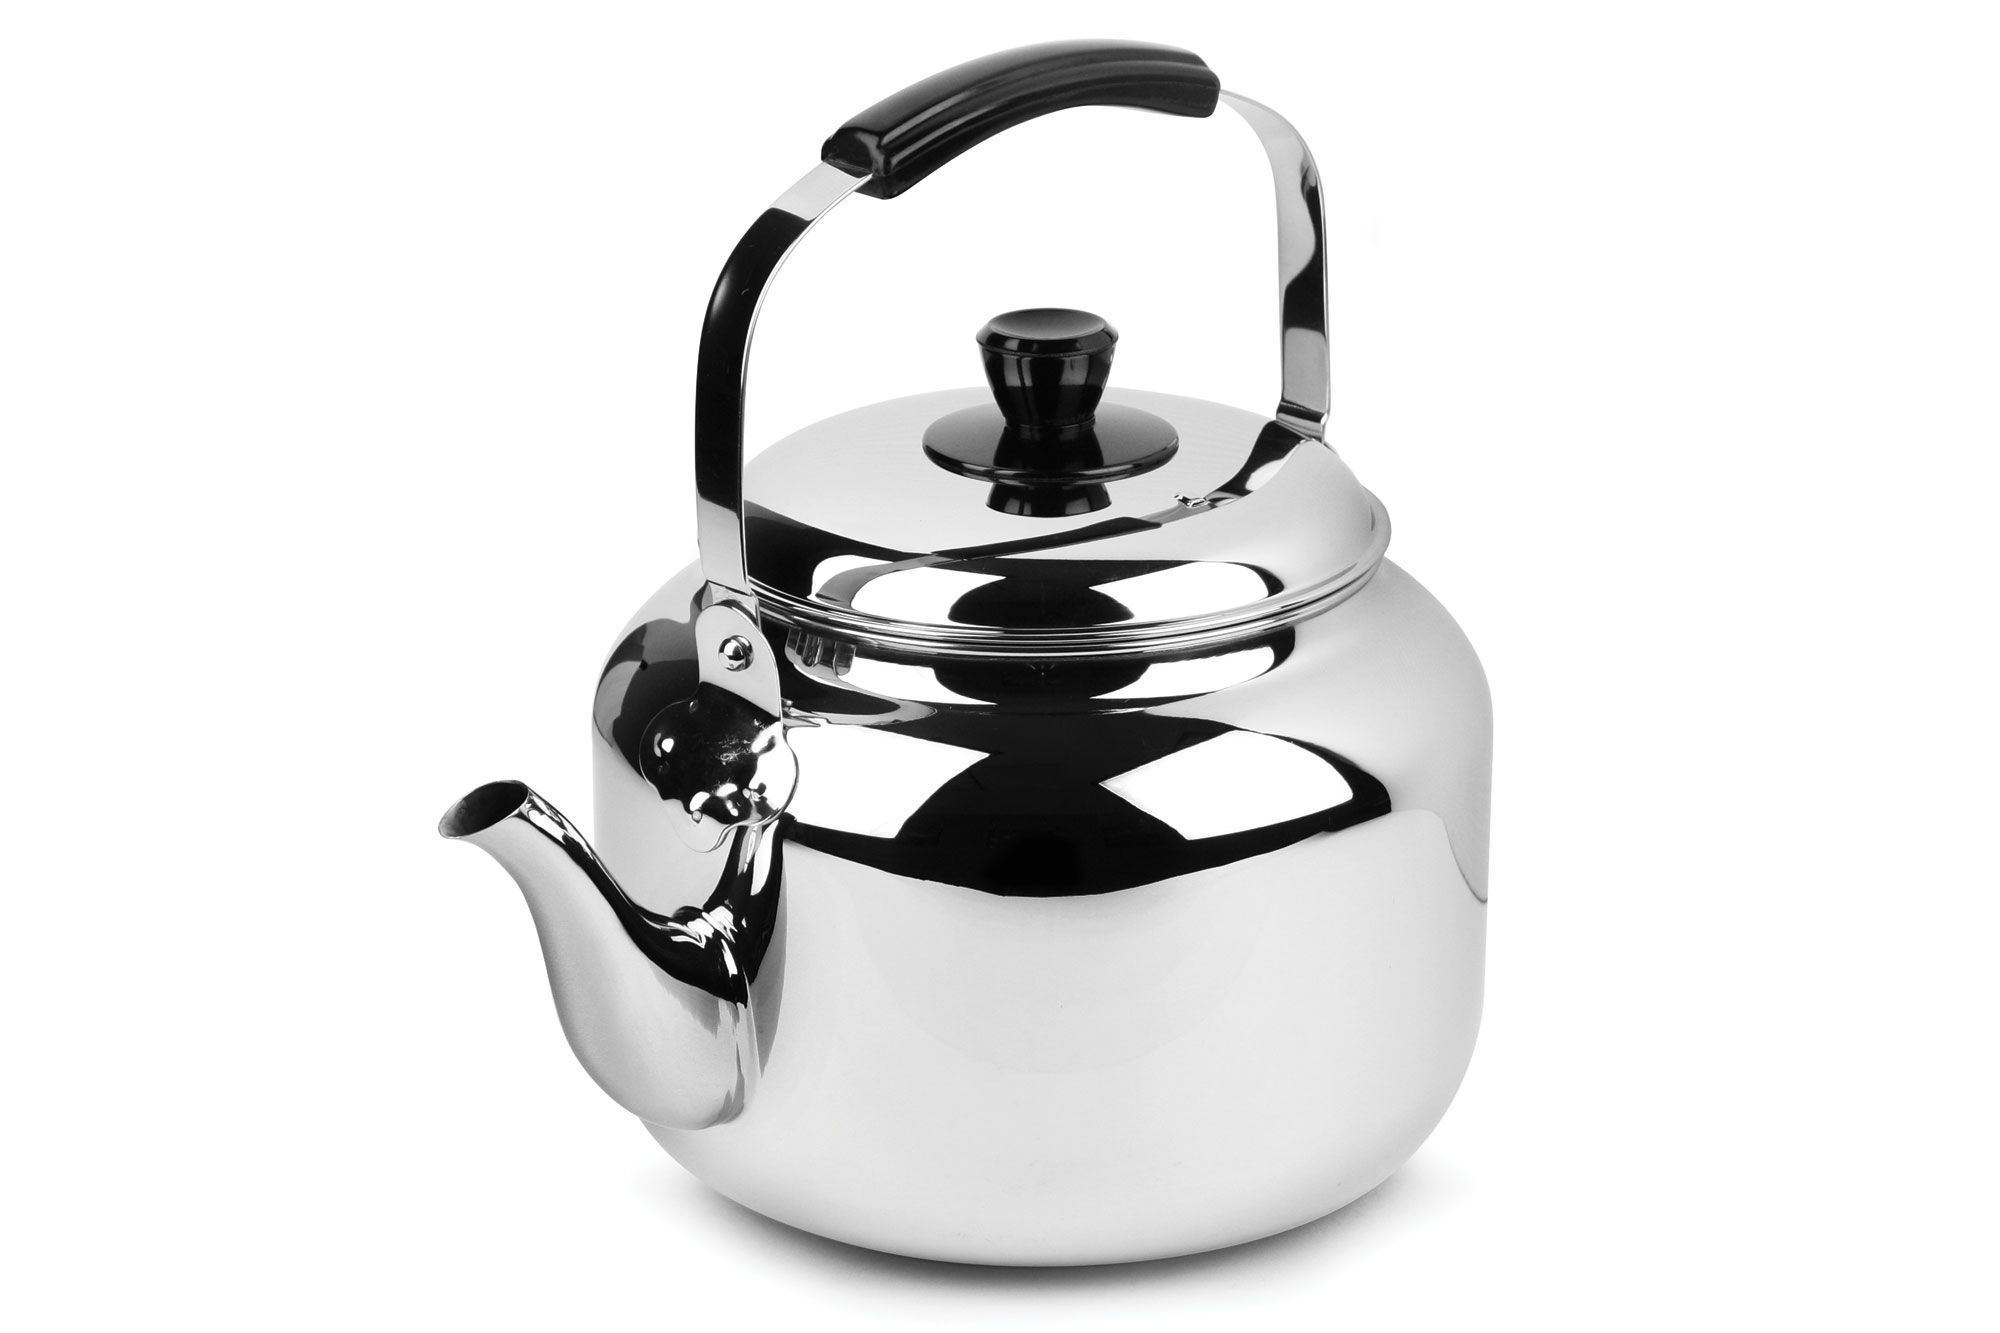 Extra Sturdy Surgical Stainless Steel 2.75 Quart Bellemain Whistling Kettle w...